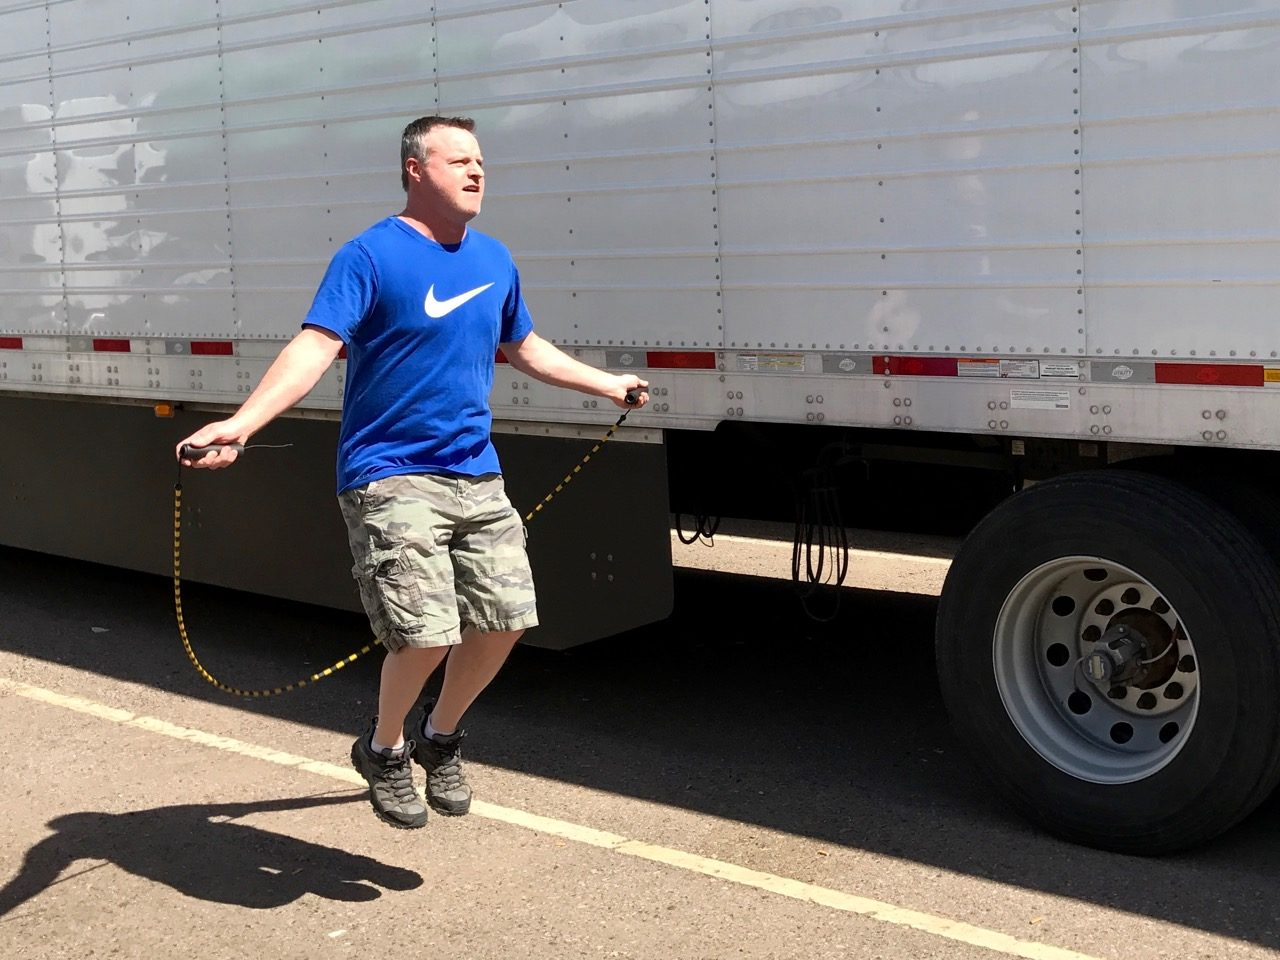 Trucker jumping rope